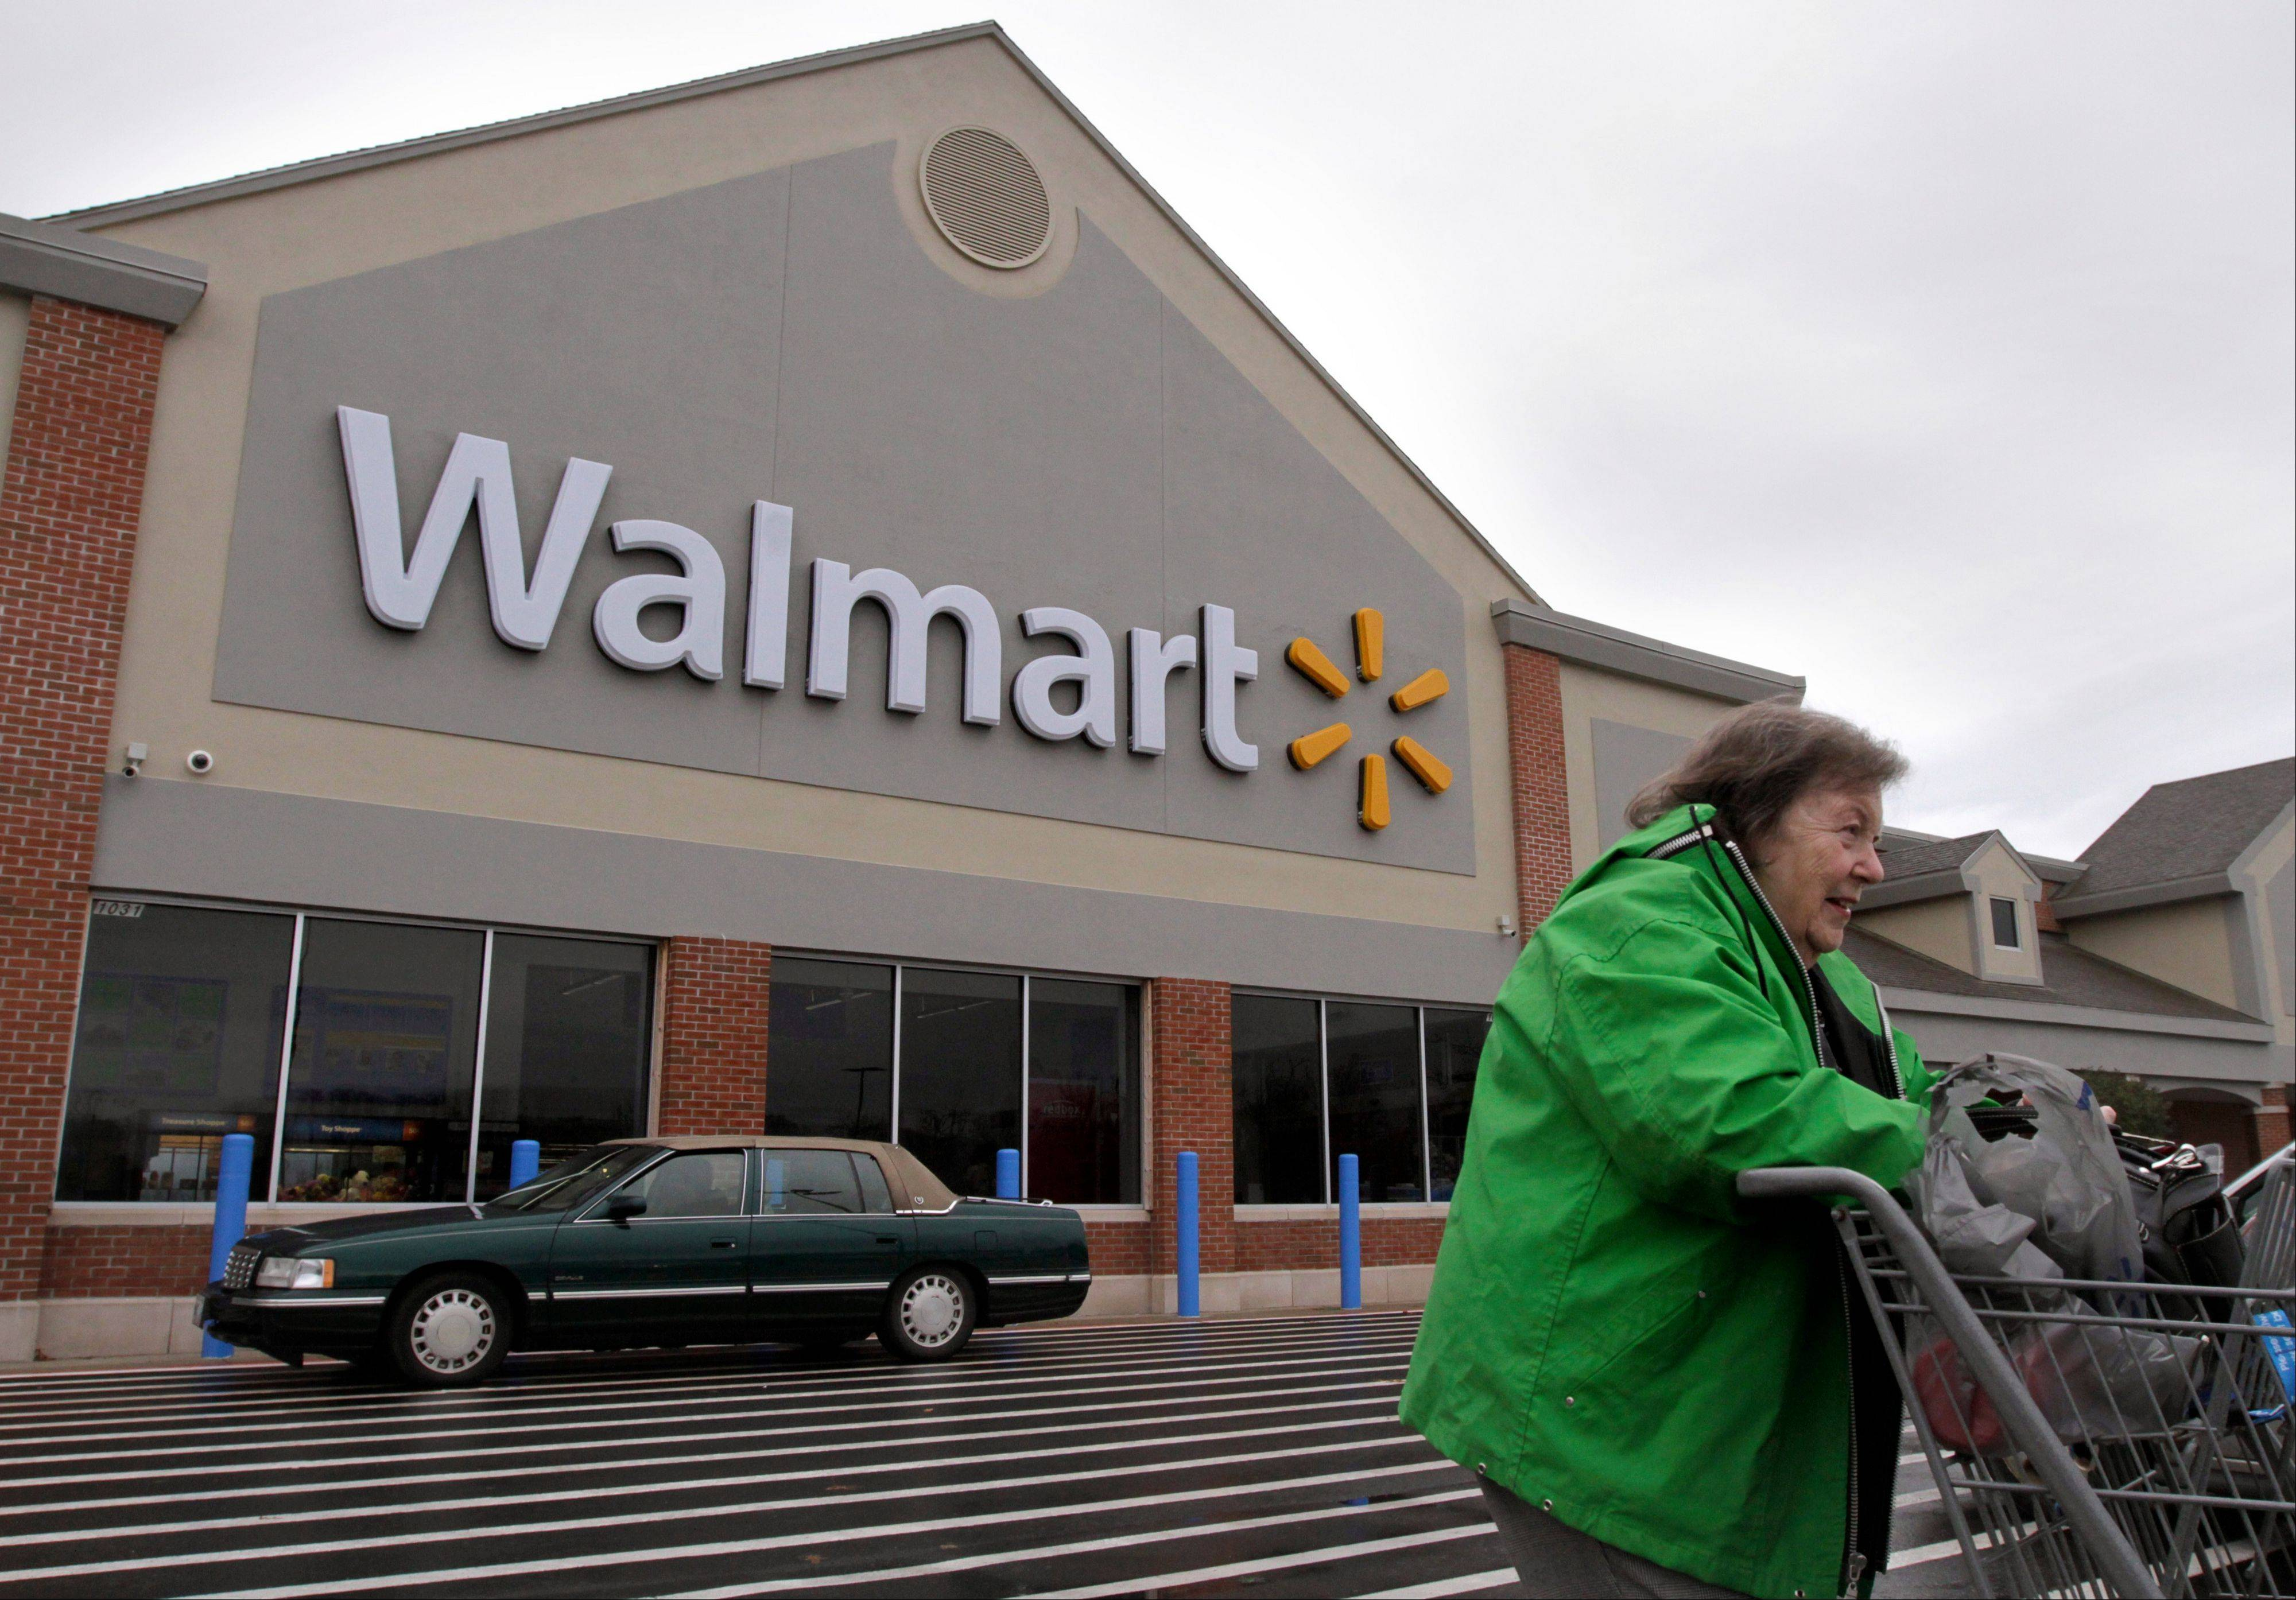 Walmart shoppers' reaction to proposed worker protests outside stores this week is in question.